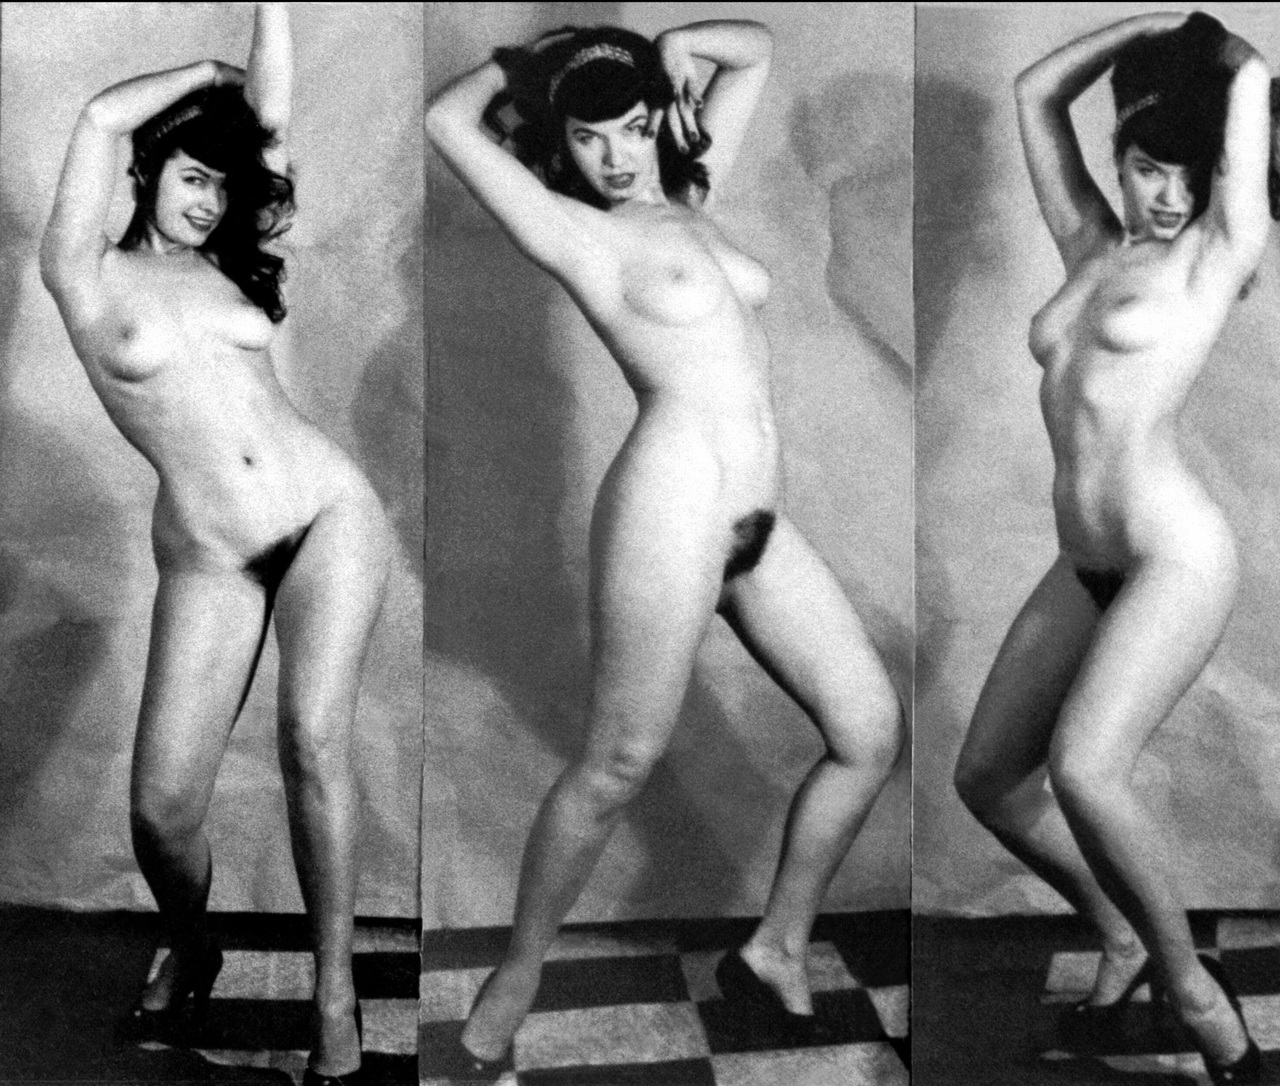 Filmes Rocco betty page hardcore the daughters